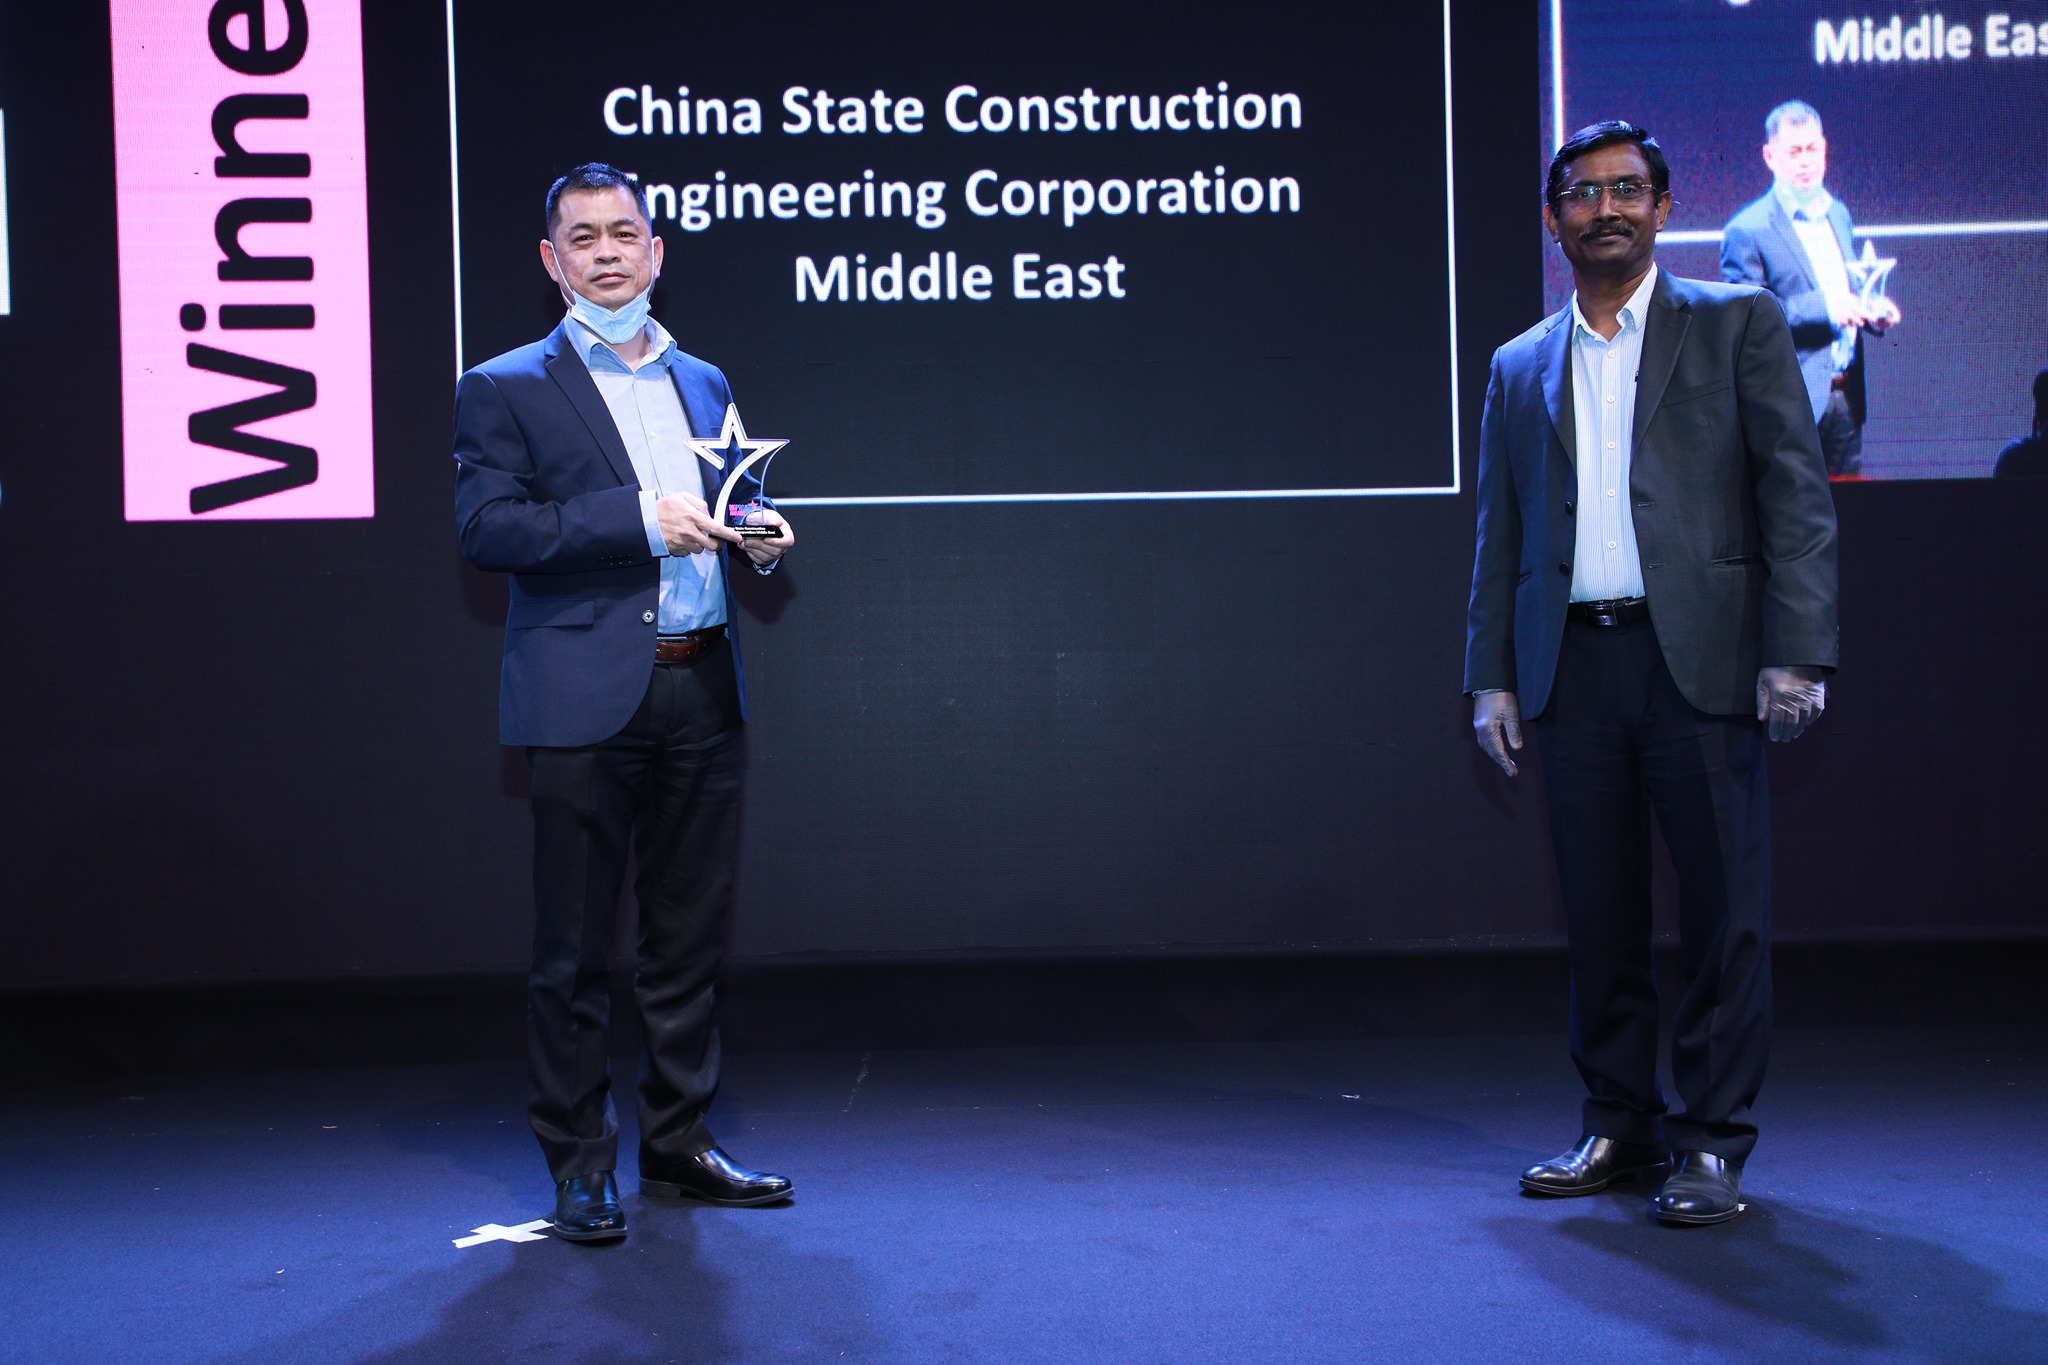 """Act One Act Two Project Received """"Excellence in BIM Implementation Award"""